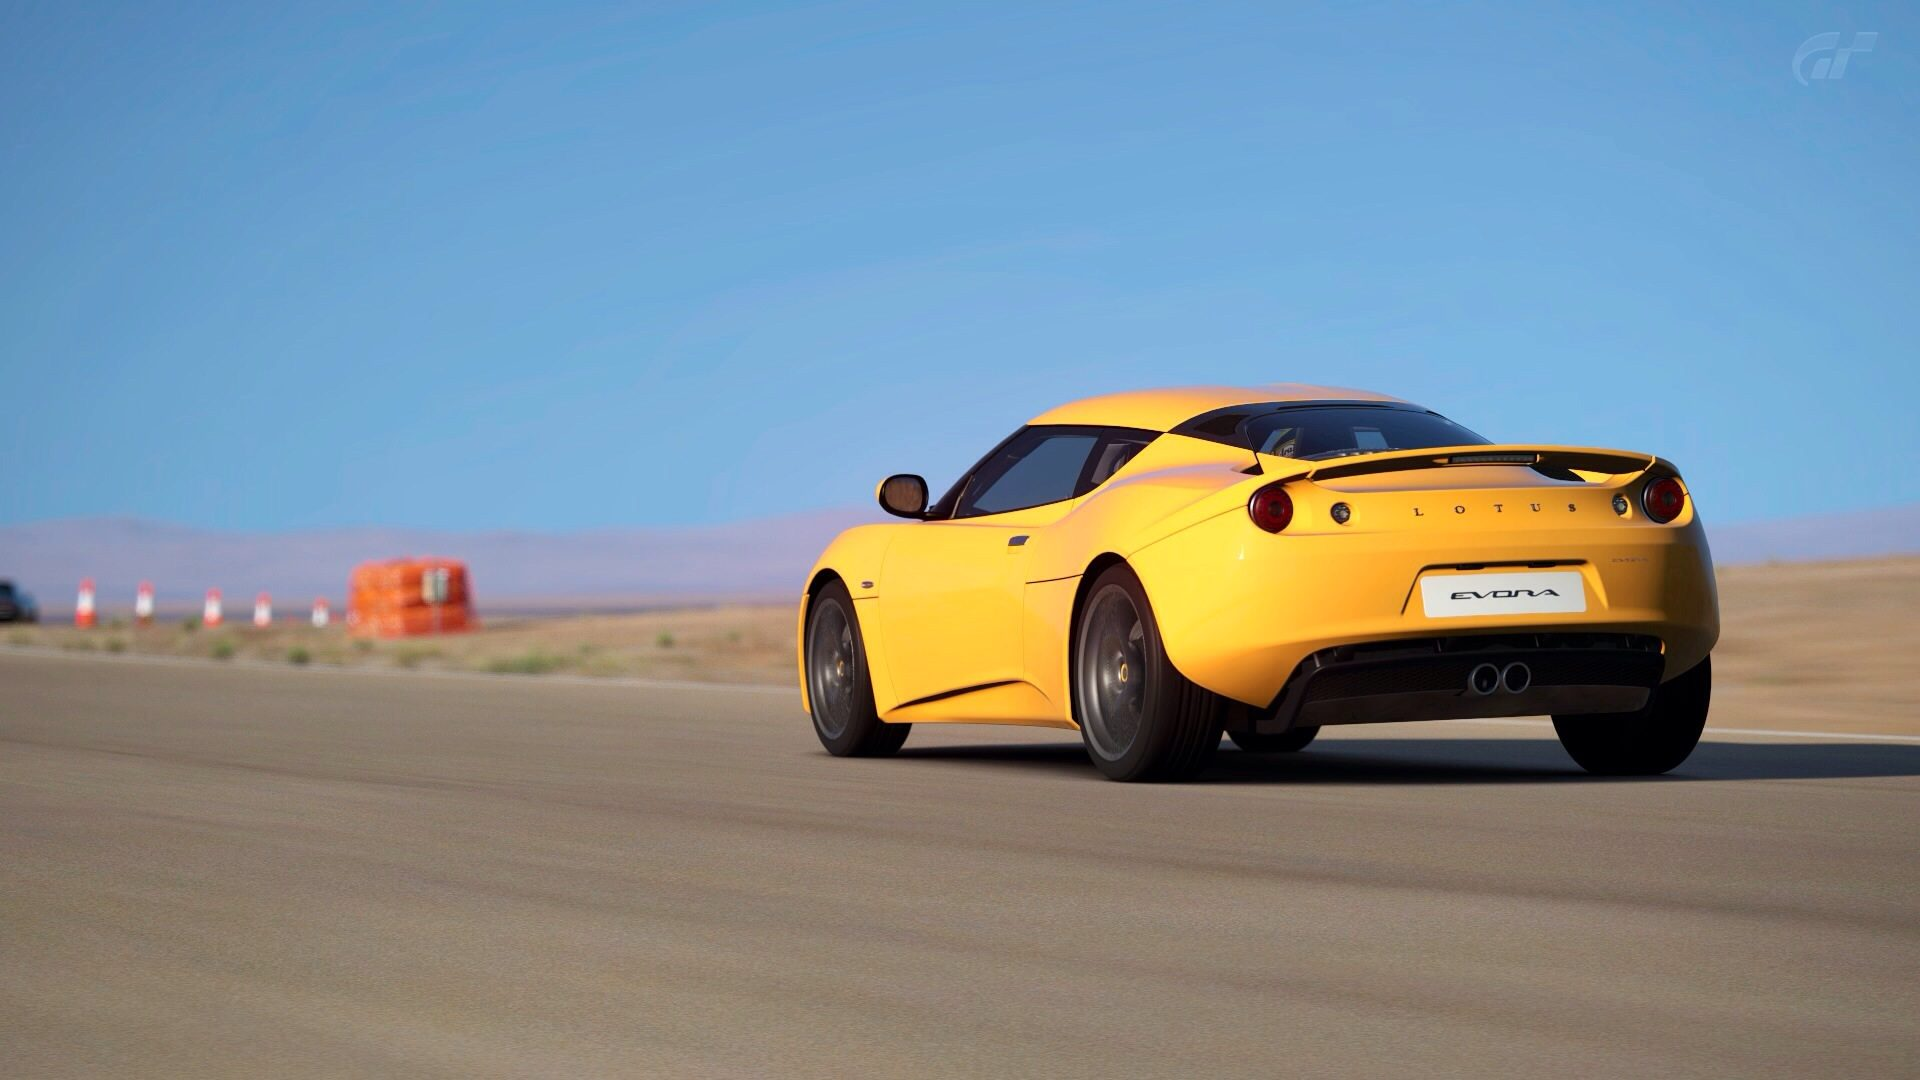 Lotus Evora Willow Streets (3).jpg